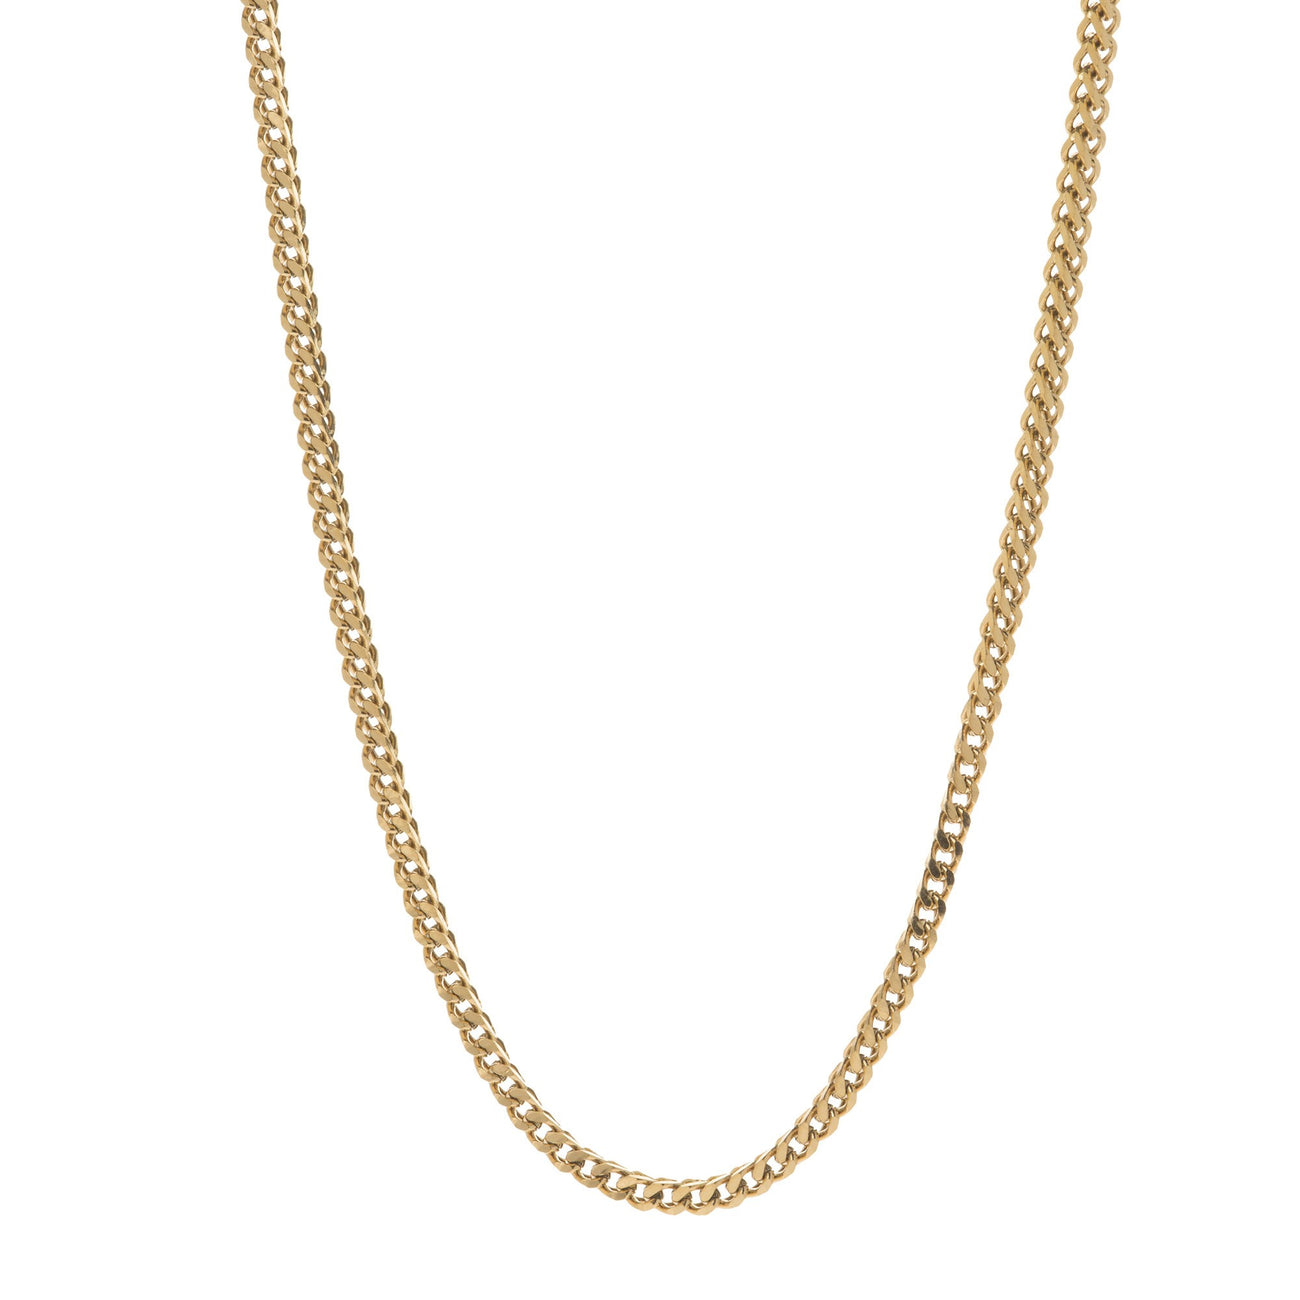 2.5mm Gold Franco Box Chain , Chains, SpicyIce - 1